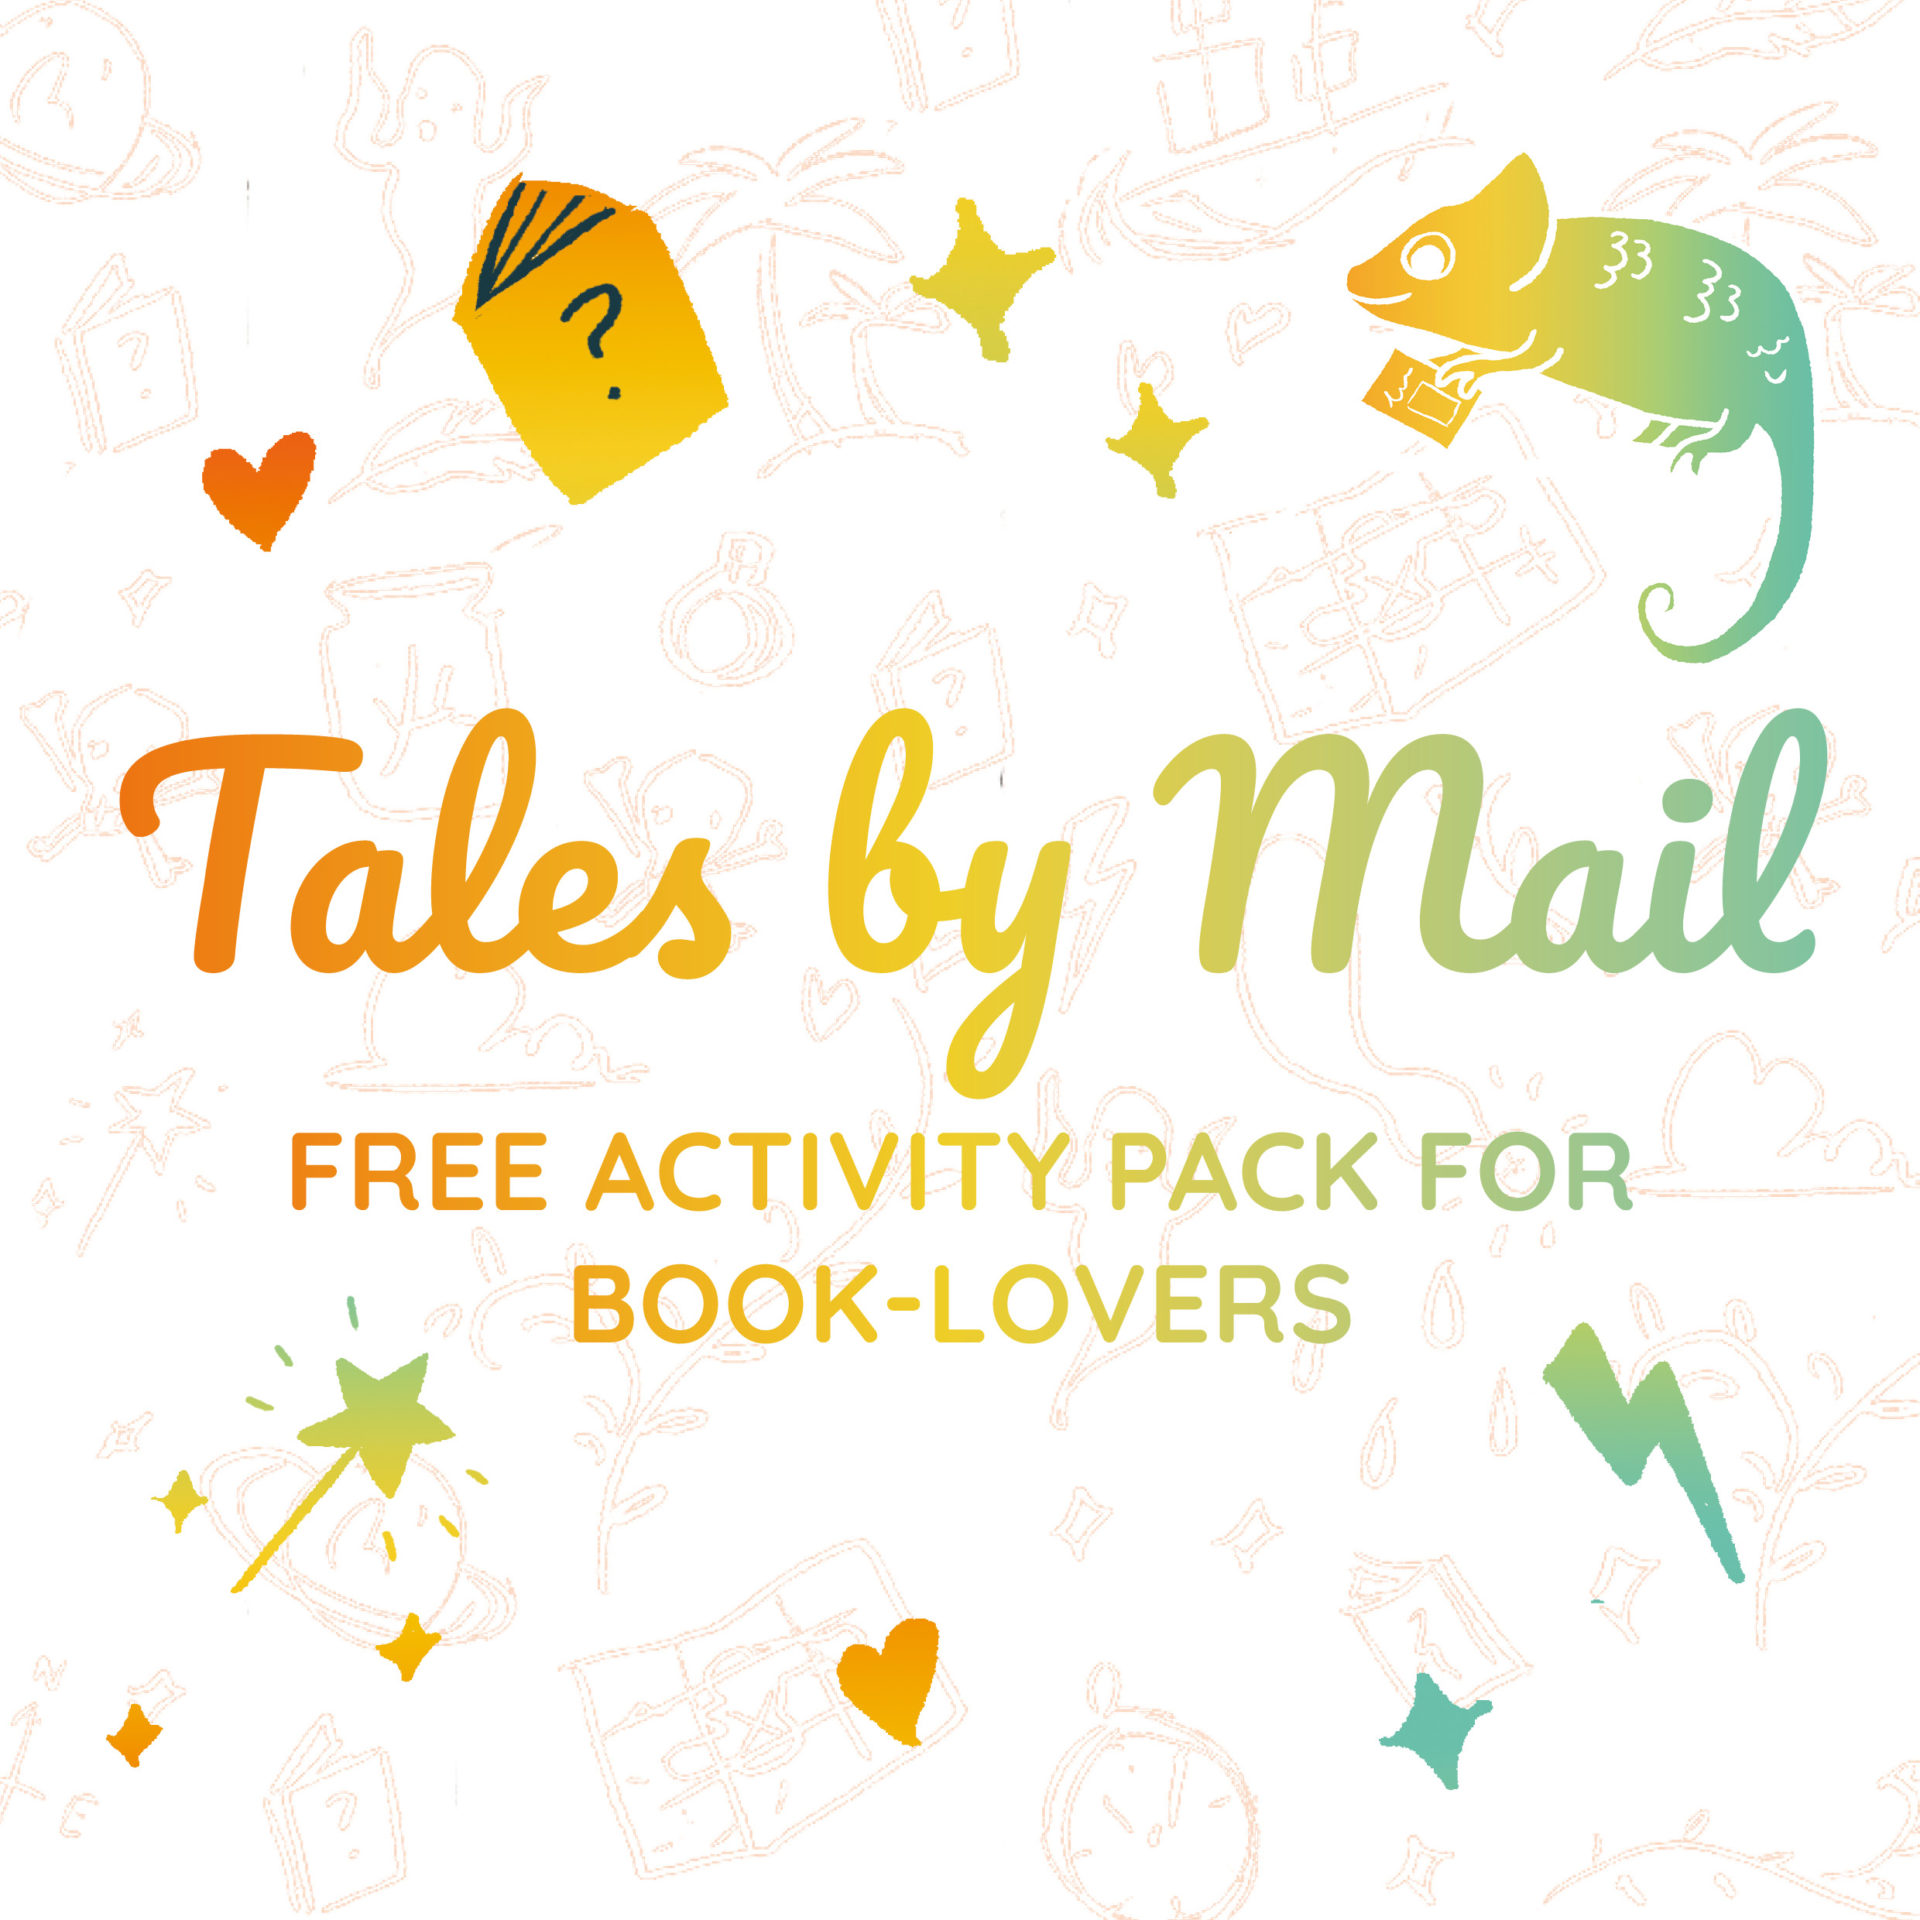 Free activity pack